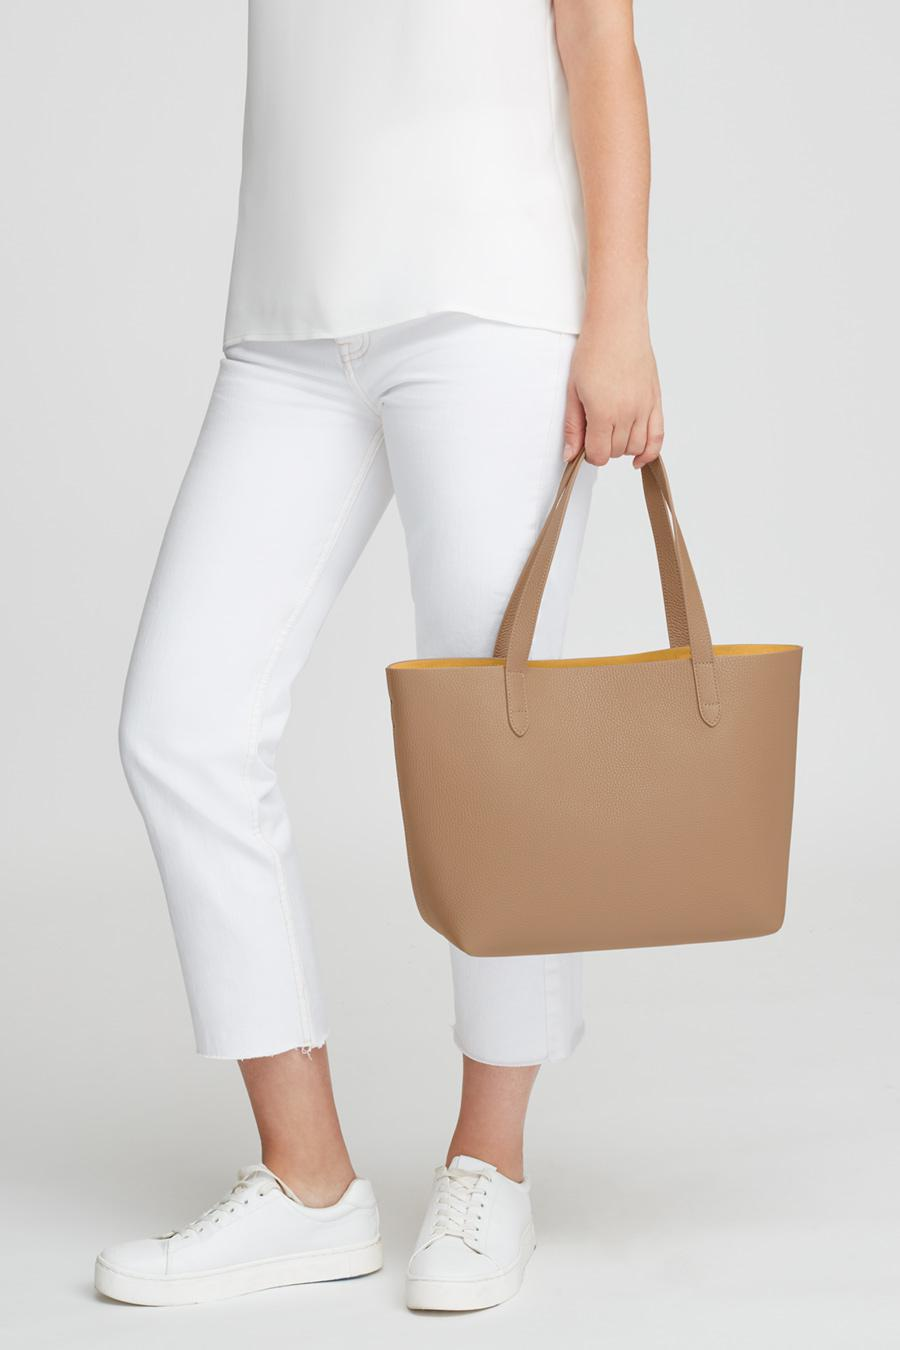 Women's Small Structured Leather Tote Bag in Cappuccino/Yellow | Pebbled Leather by Cuyana 5